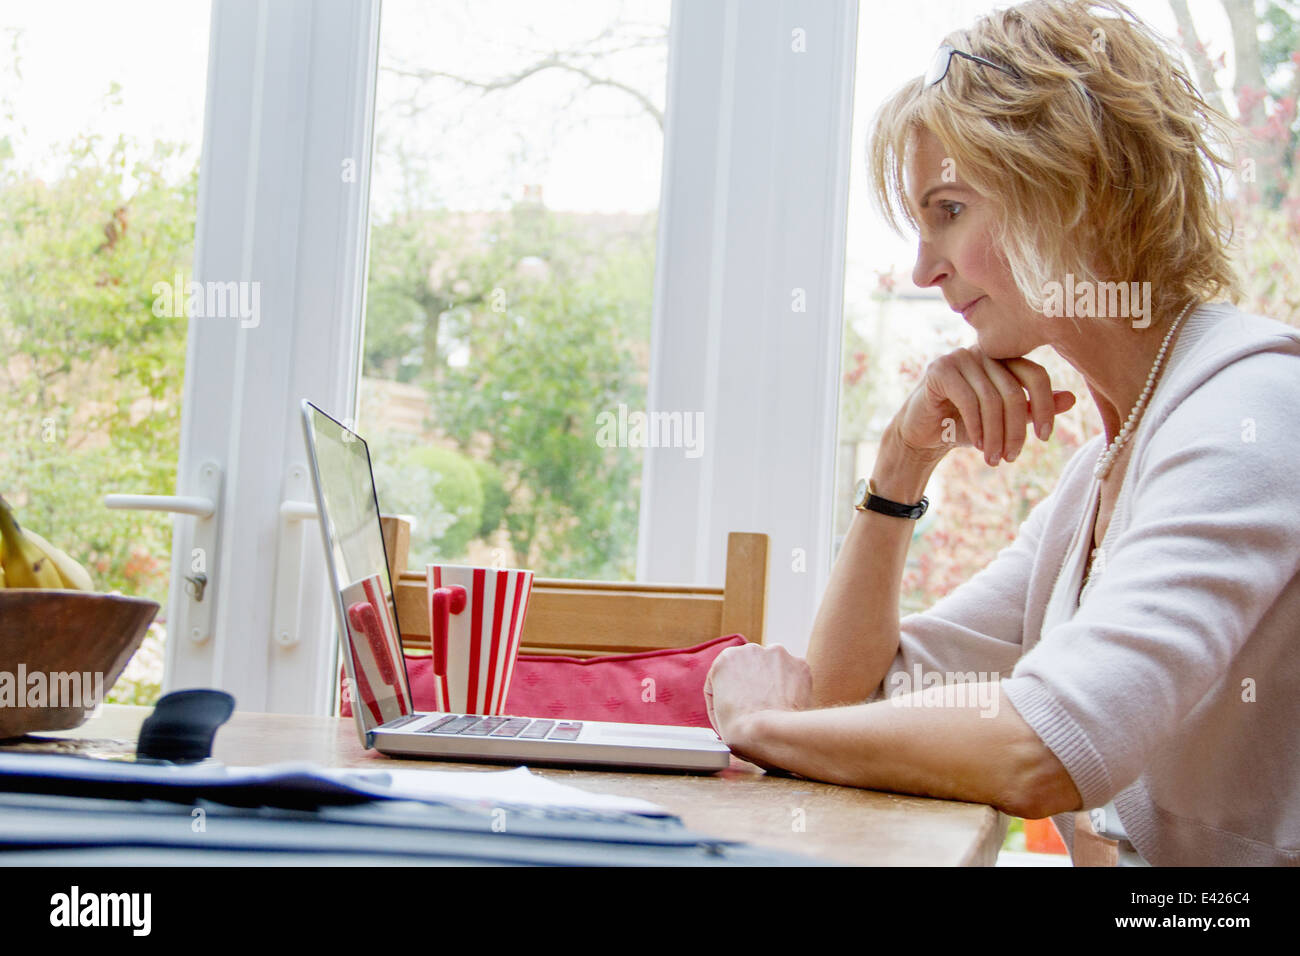 Mature Woman using laptop in kitchen Banque D'Images